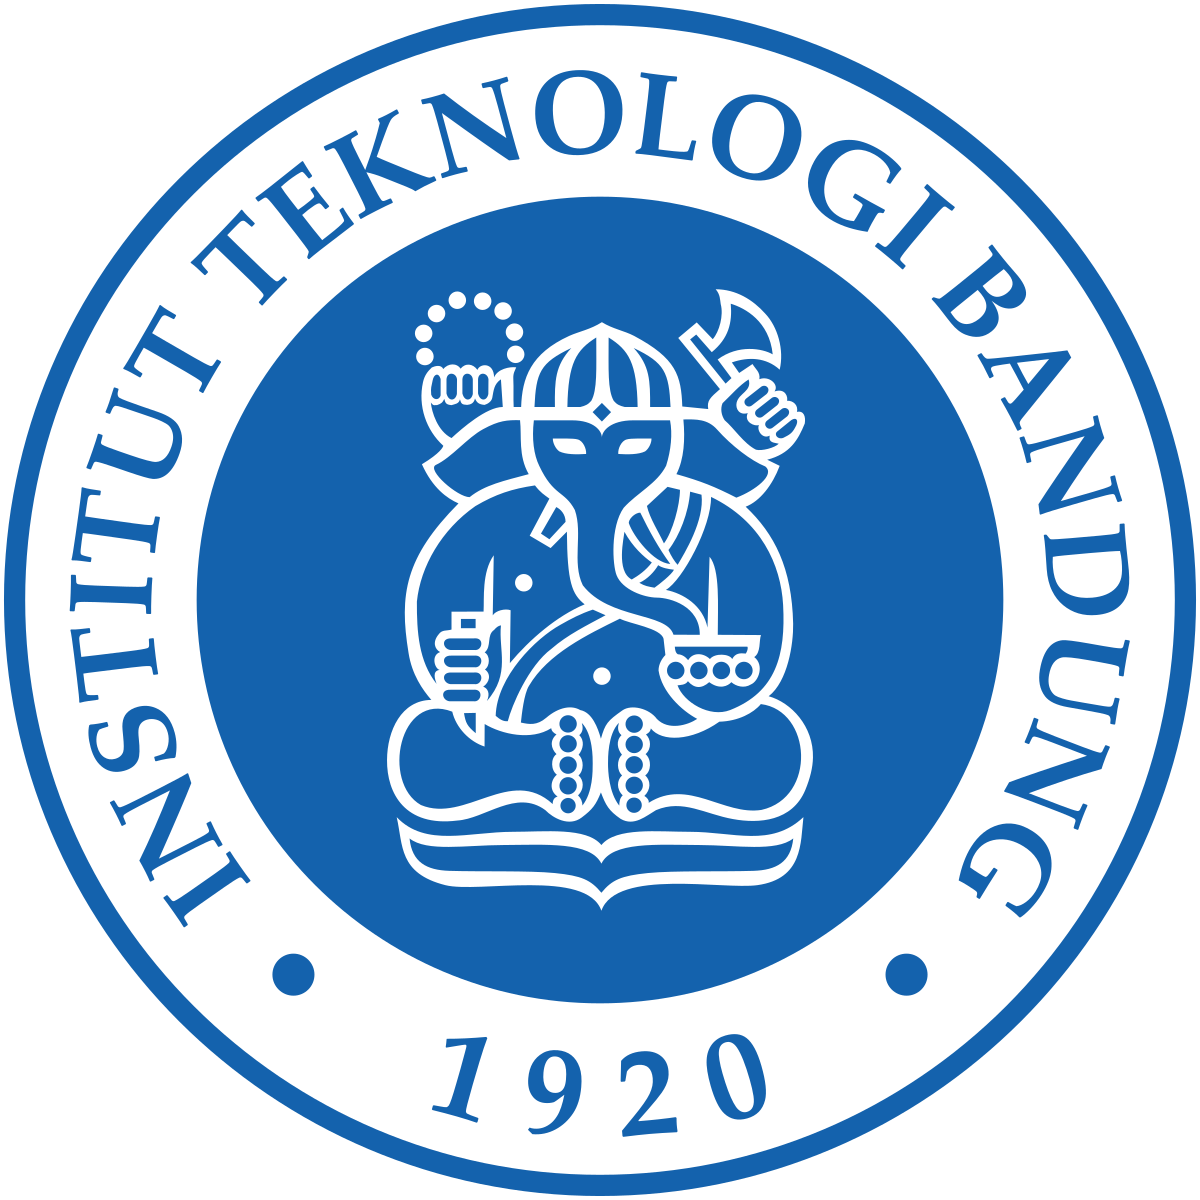 Faculty of Civil and Environmental Engineering, Institut Teknologi Bandung (ITB)